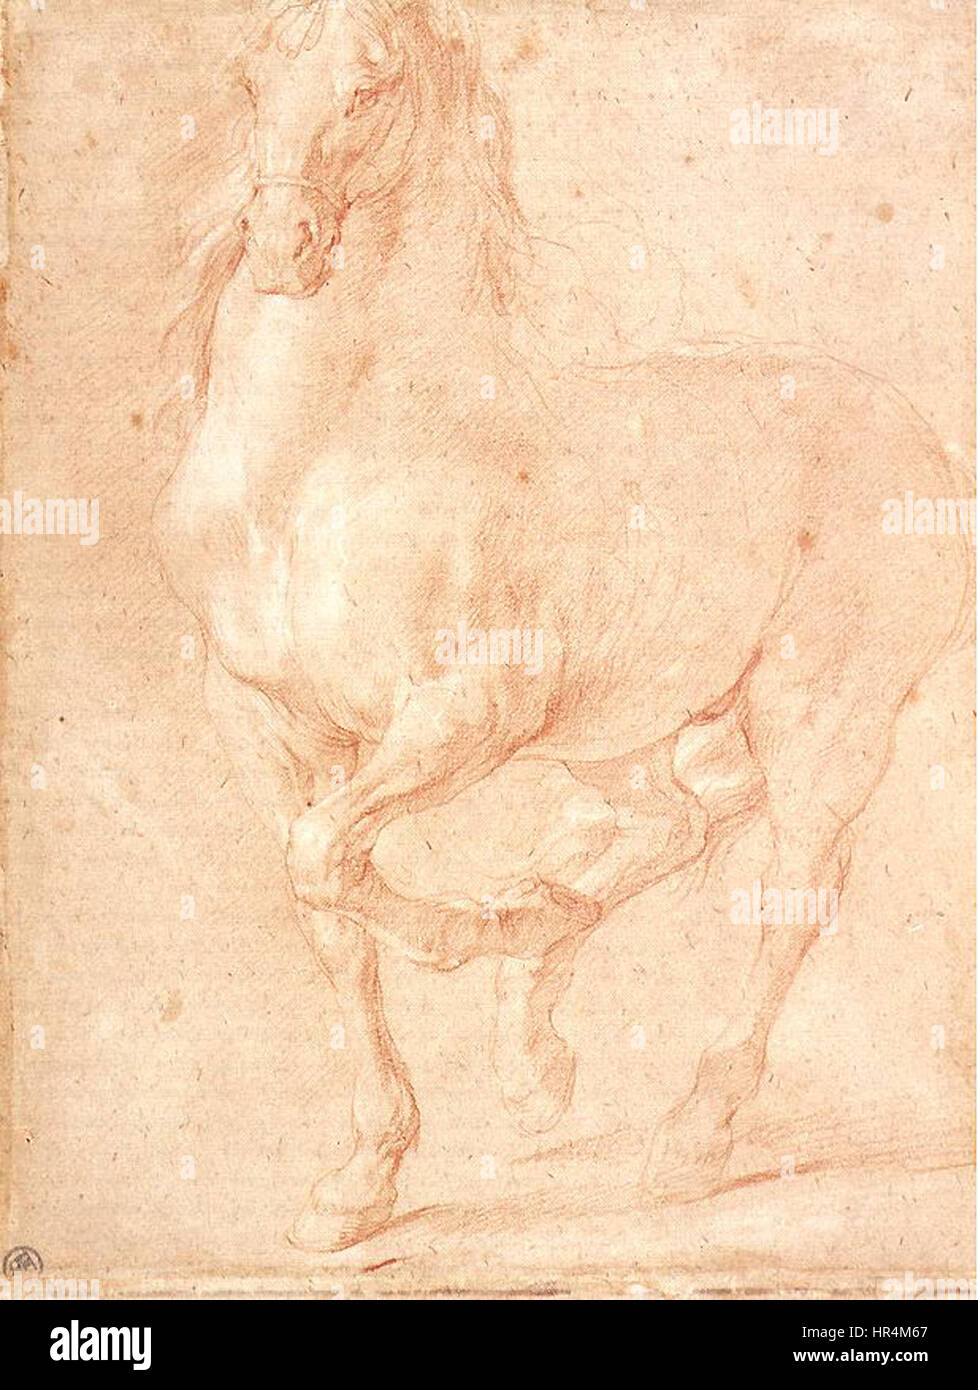 Pierre Puget - Study of a Horse - WGA18480 - Stock Image